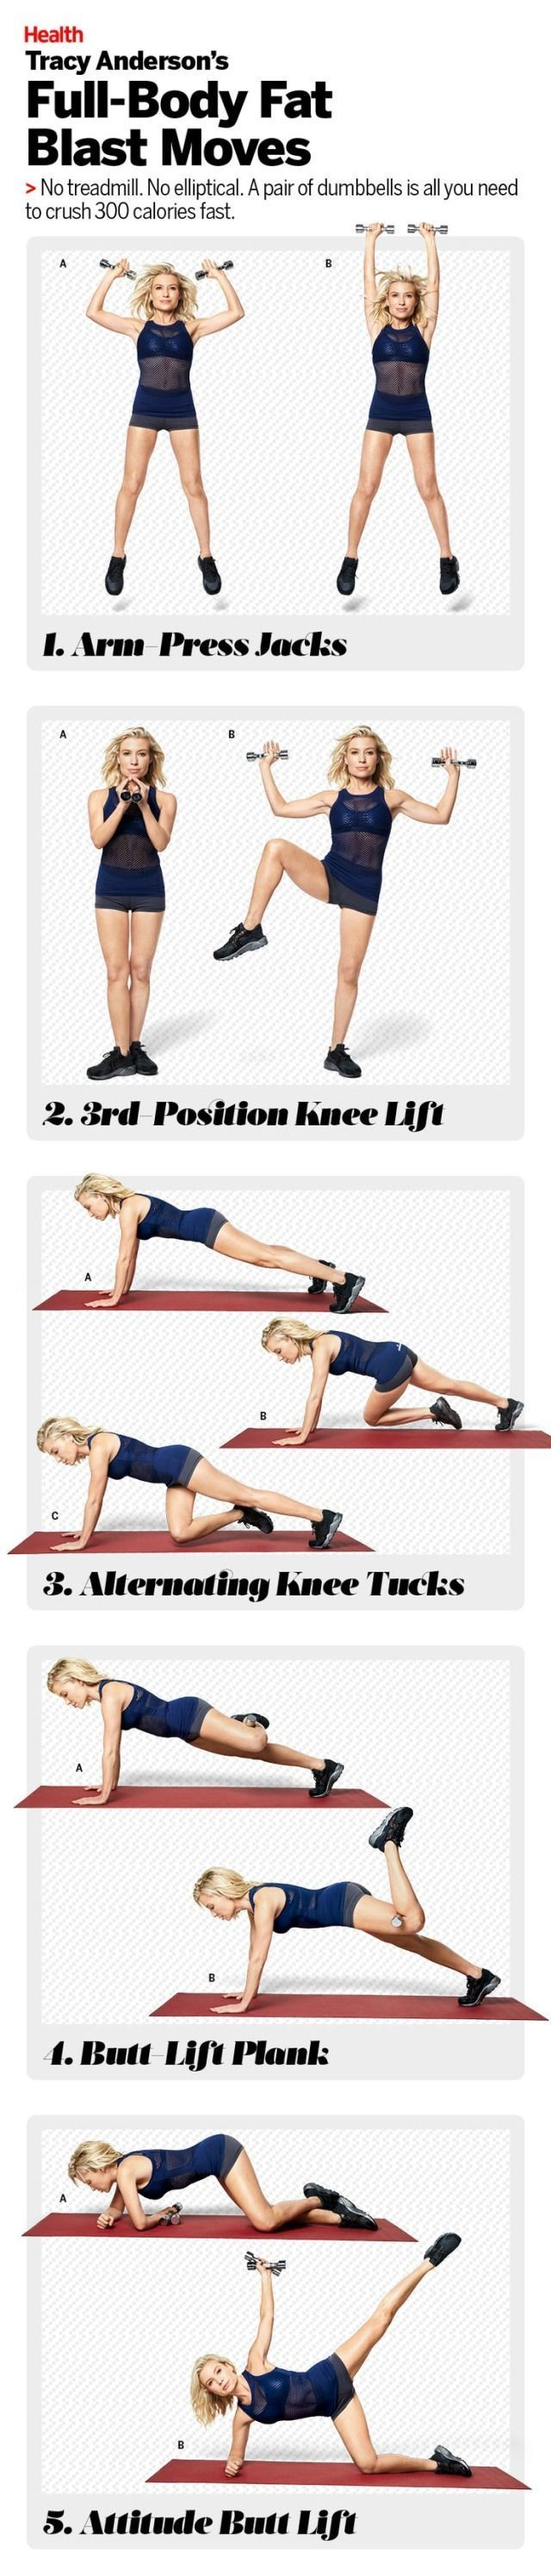 The full-body fat blast workout with Tracy Anderson: Burn more fat and crush 300 calories quickly with these challenging, fast-paced moves   Health.com #HEALTHxTA